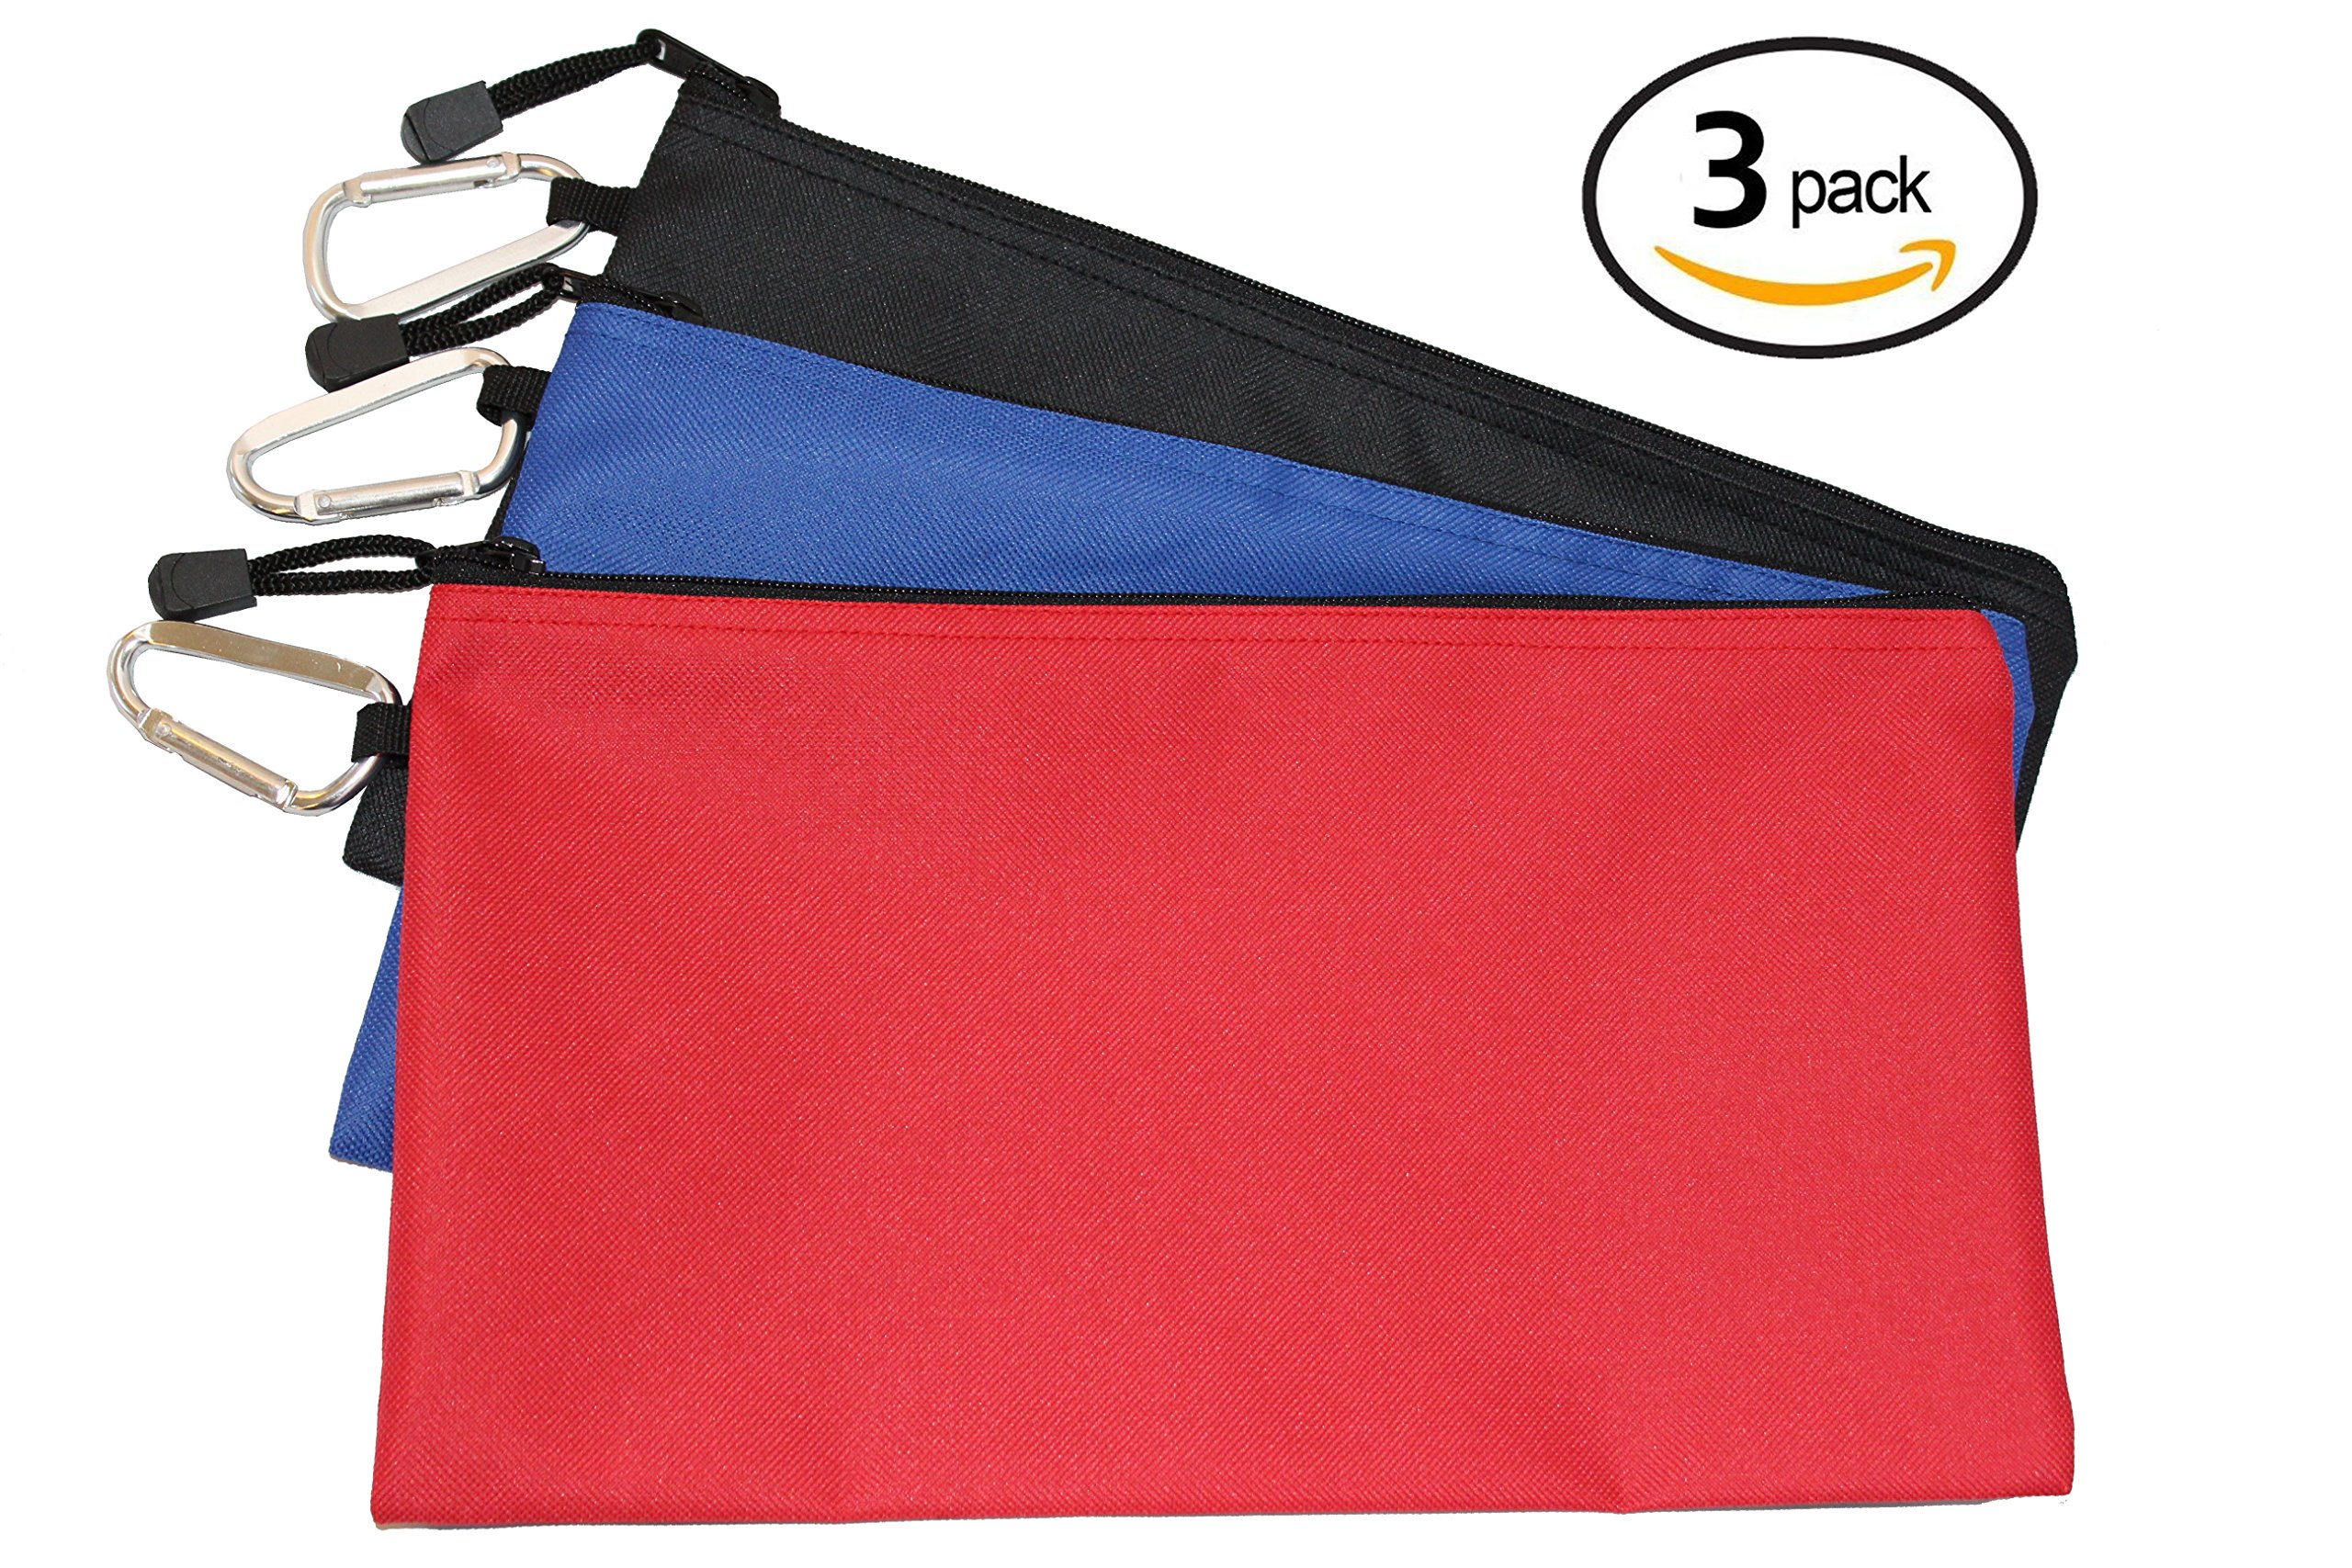 Waterproof Poly Tool Pouch - 3 PACK of Clip Bags, 12.5'' x 7'' with 2.5'' Carabiner and Zipper